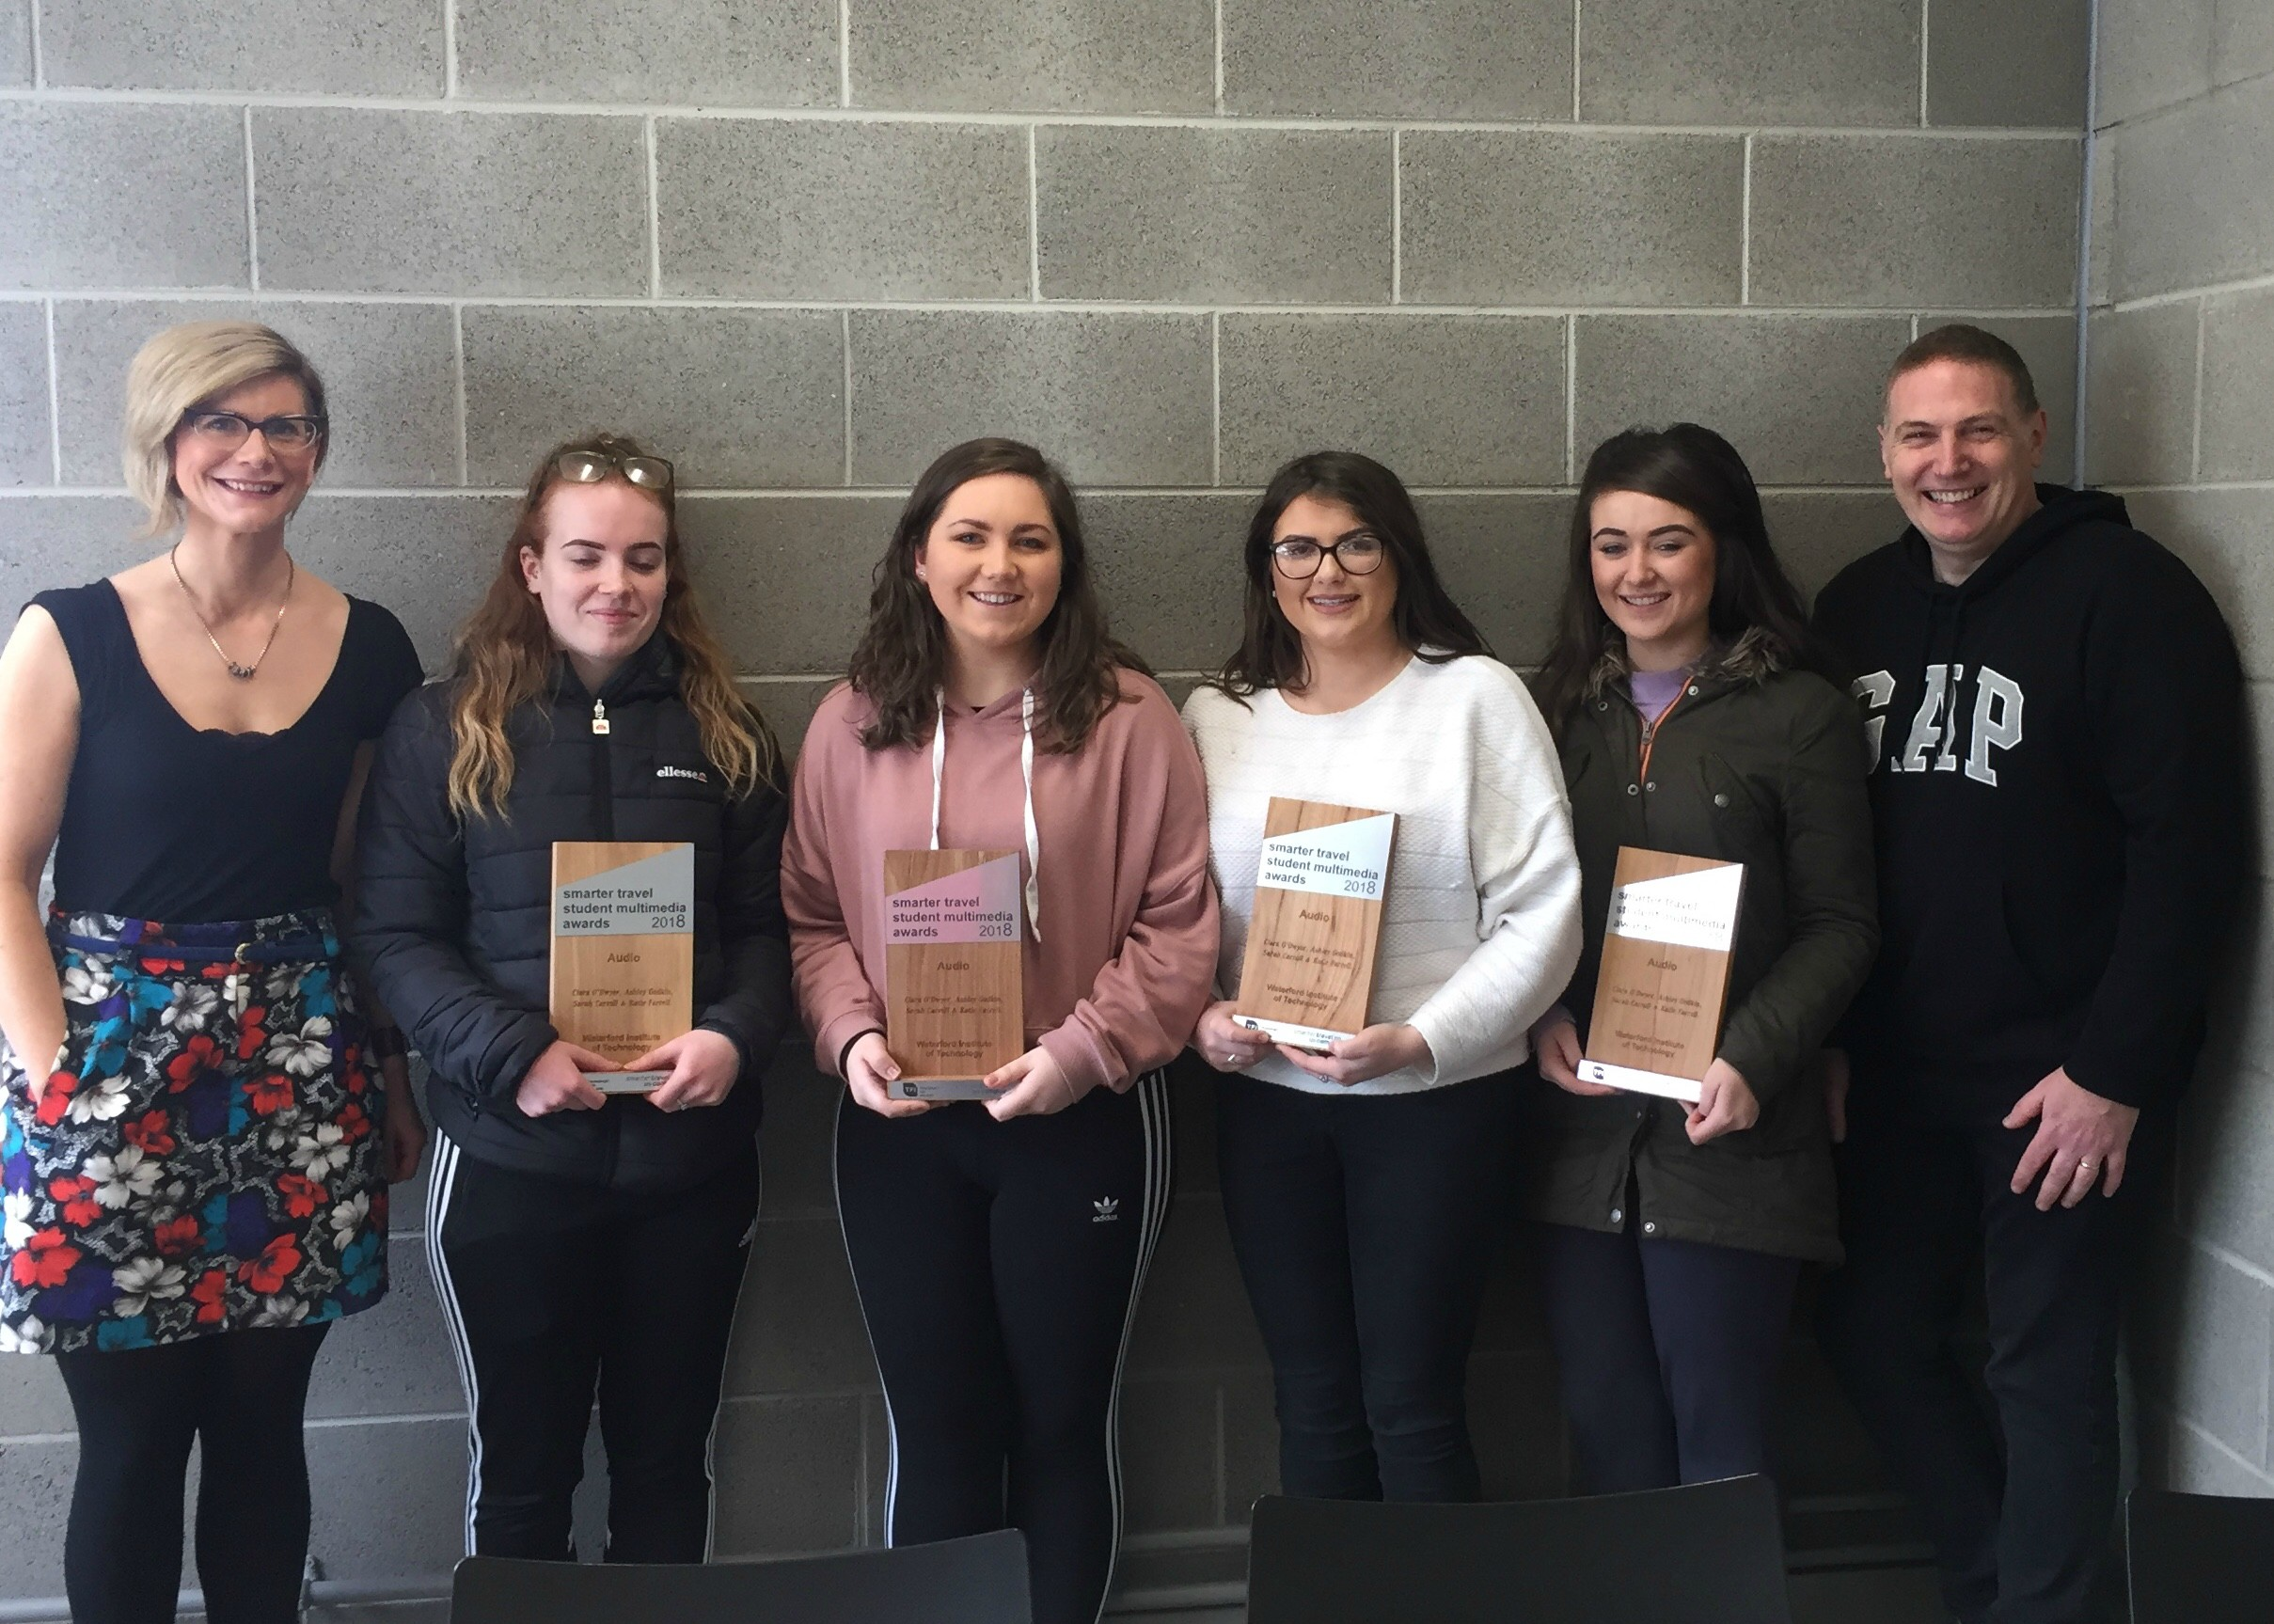 Pictured are the award winning WIT students with Health Promotion Lecturer Dr. Jenny O'Connor and Entertainment Systems Lecturer Mr. Colm Dunphy